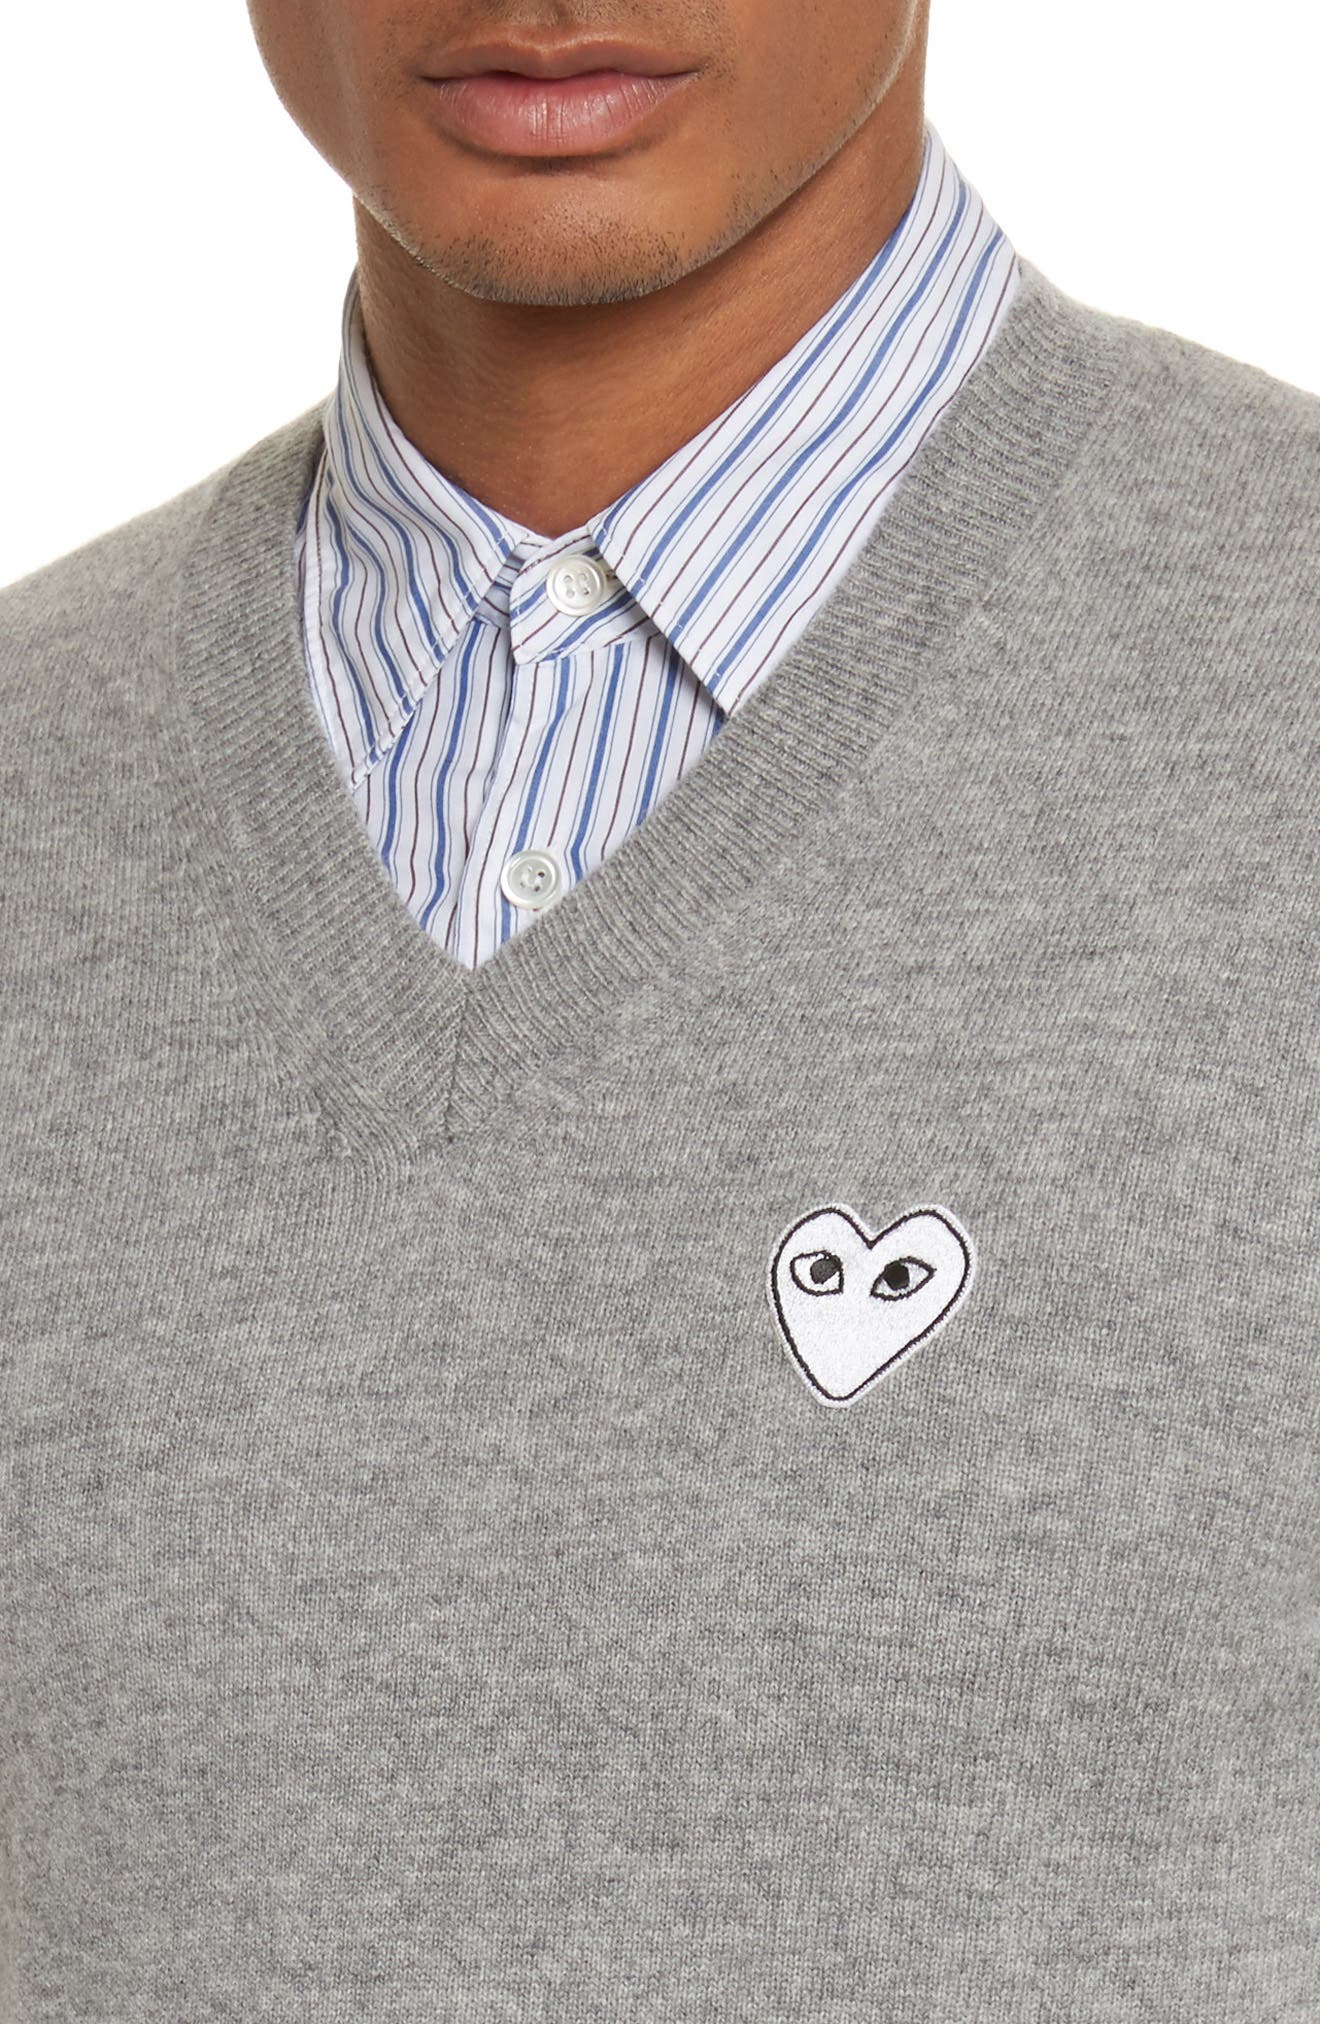 White Heart Wool V-Neck Sweater,                             Alternate thumbnail 4, color,                             LIGHT GREY